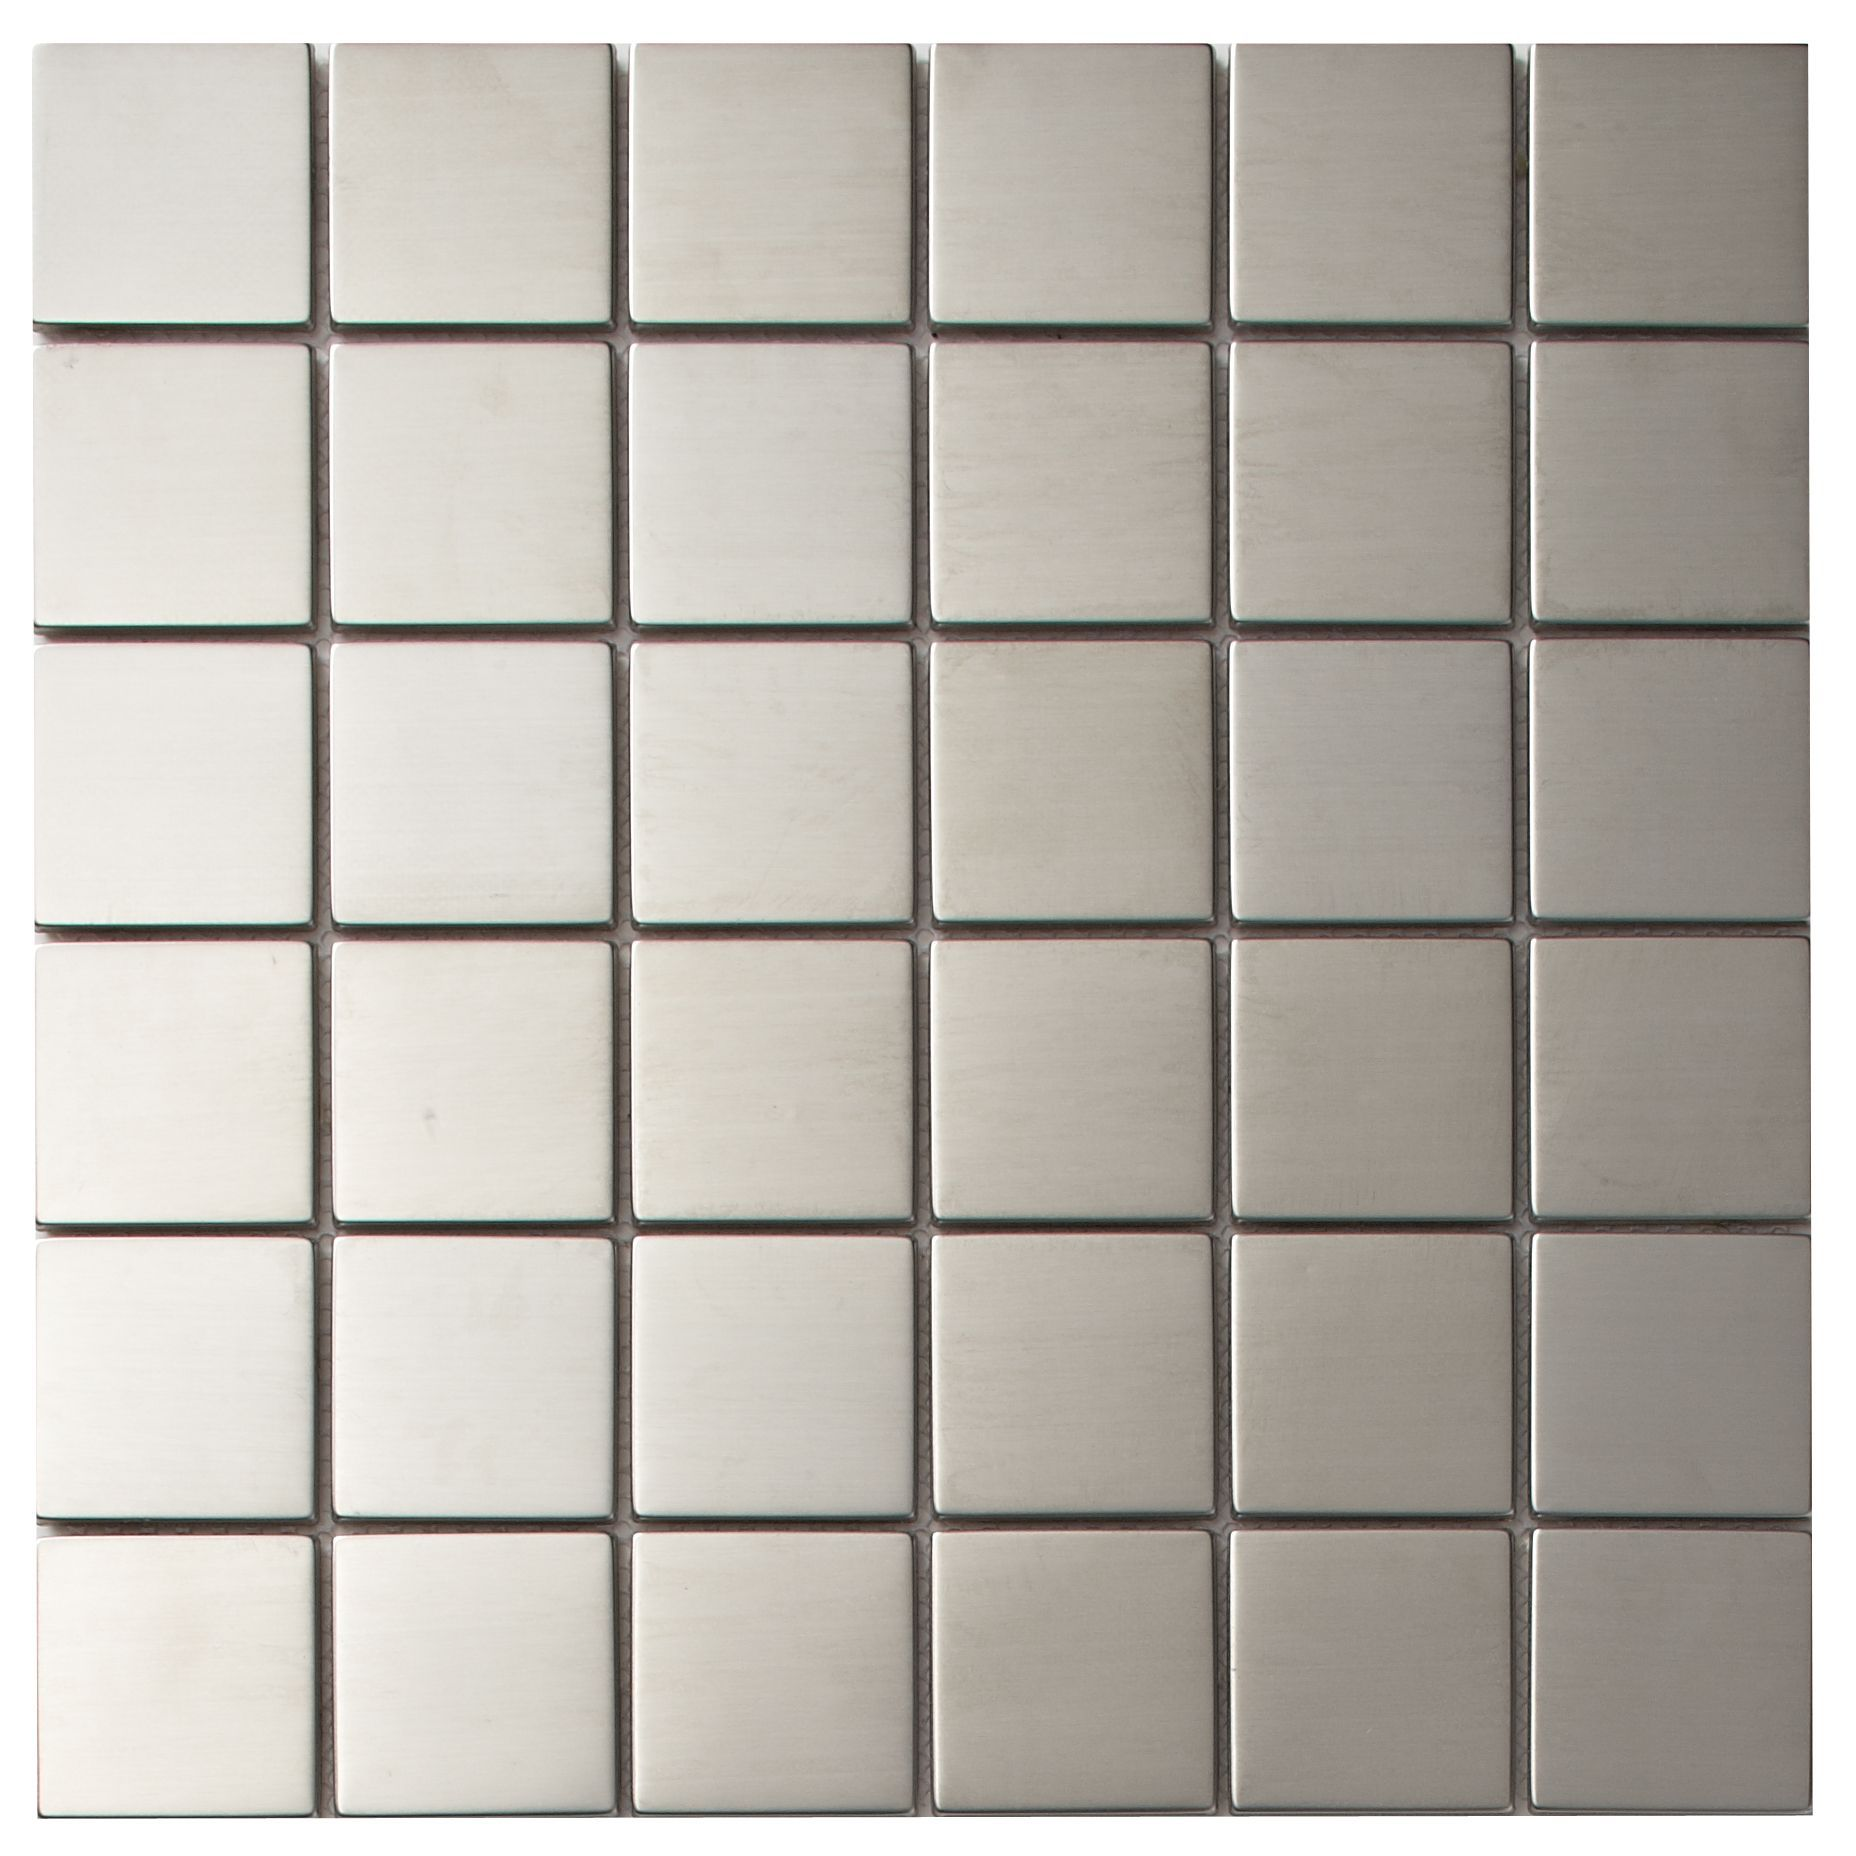 Green Glass Marble Mosaic Tile L 300mm W 300mm: Silver Stainless Steel Mosaic Tile, (L)300mm (W)300mm